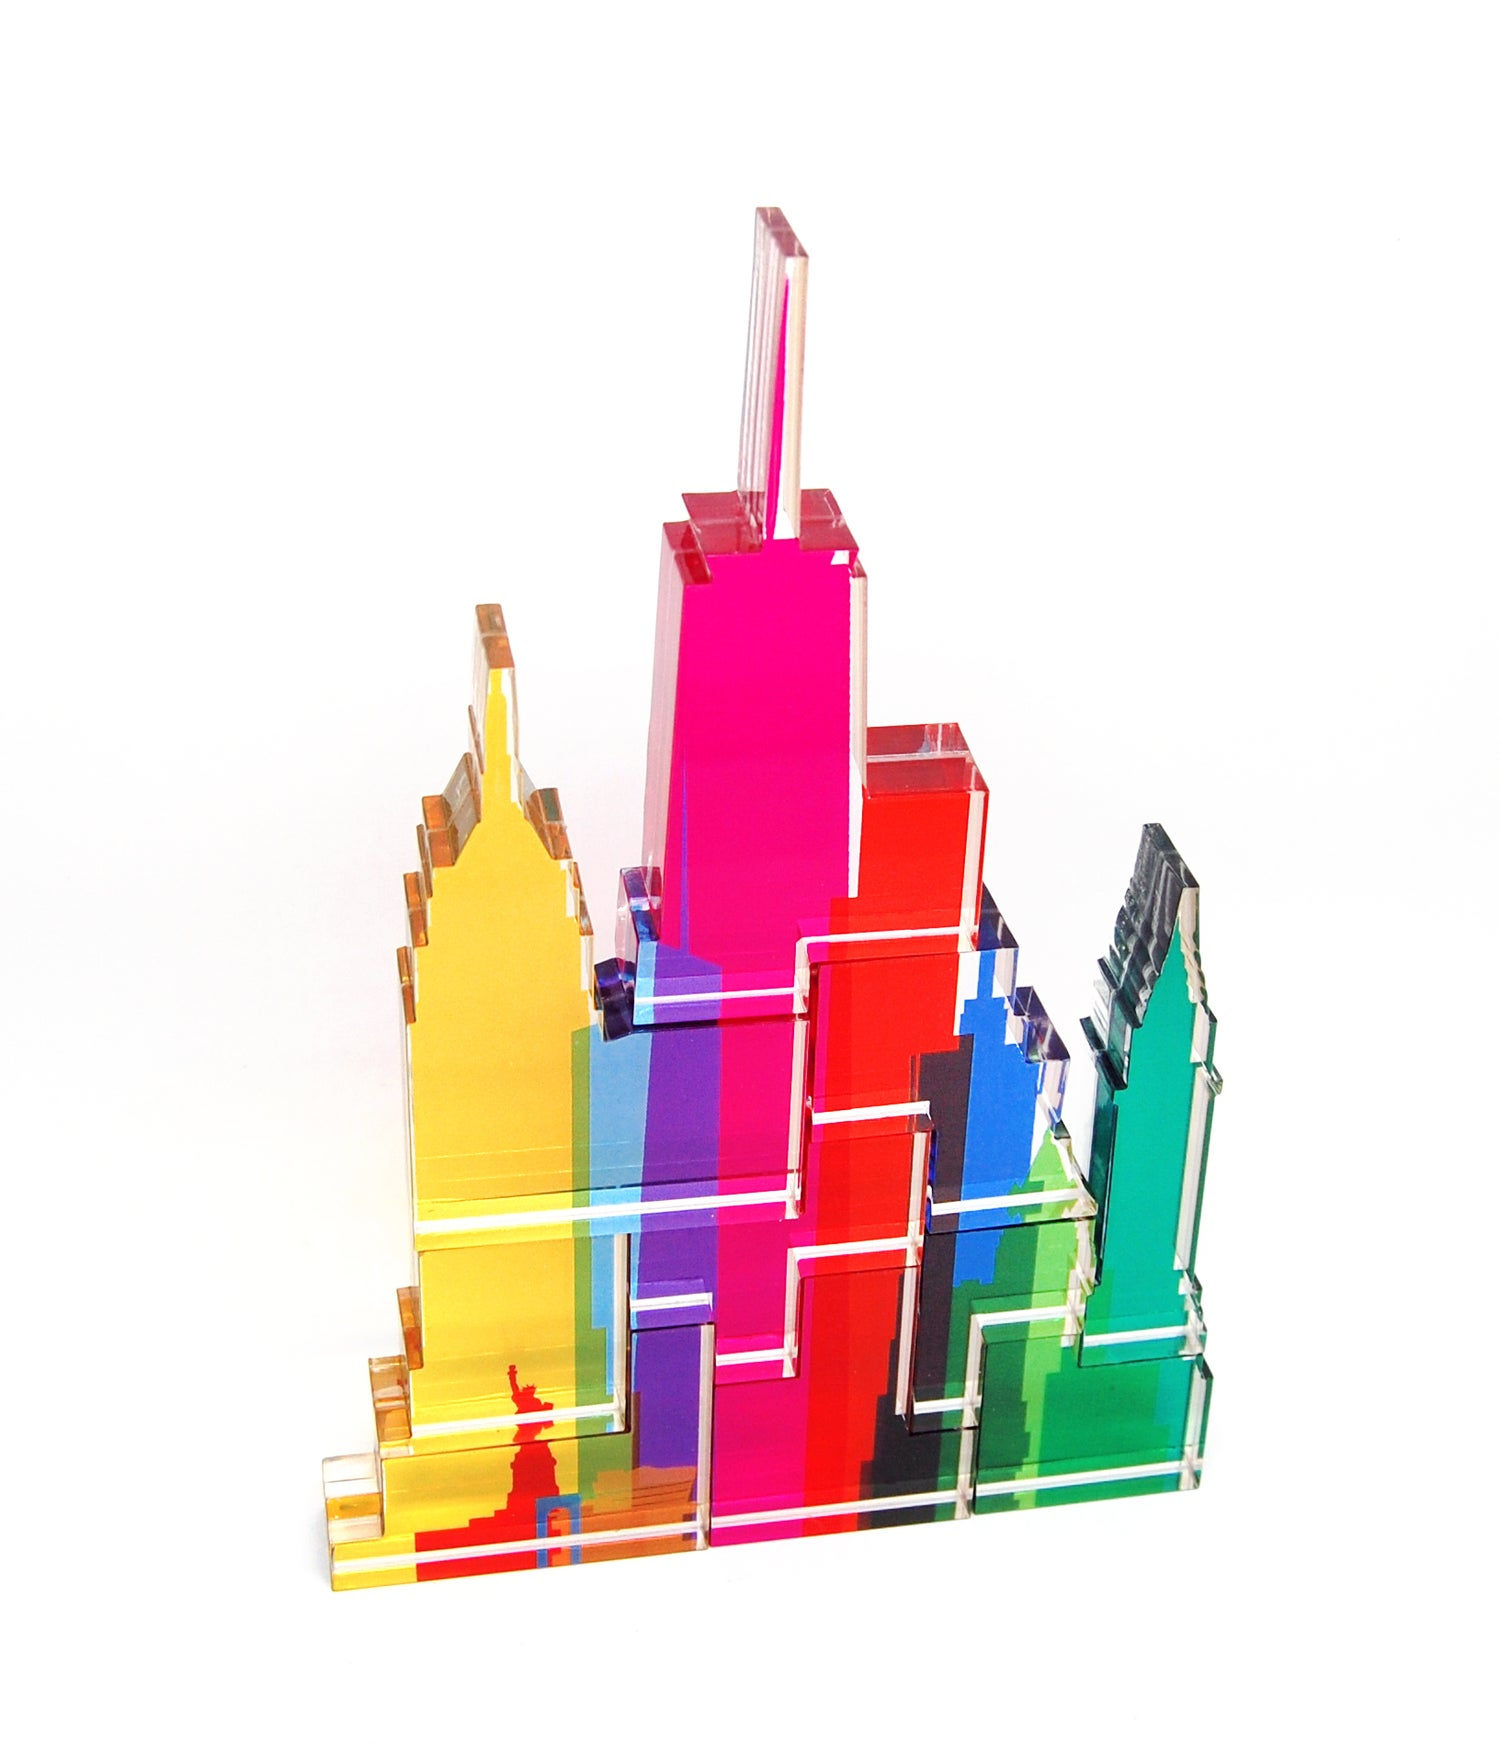 Image of Shapes of Cities puzzles